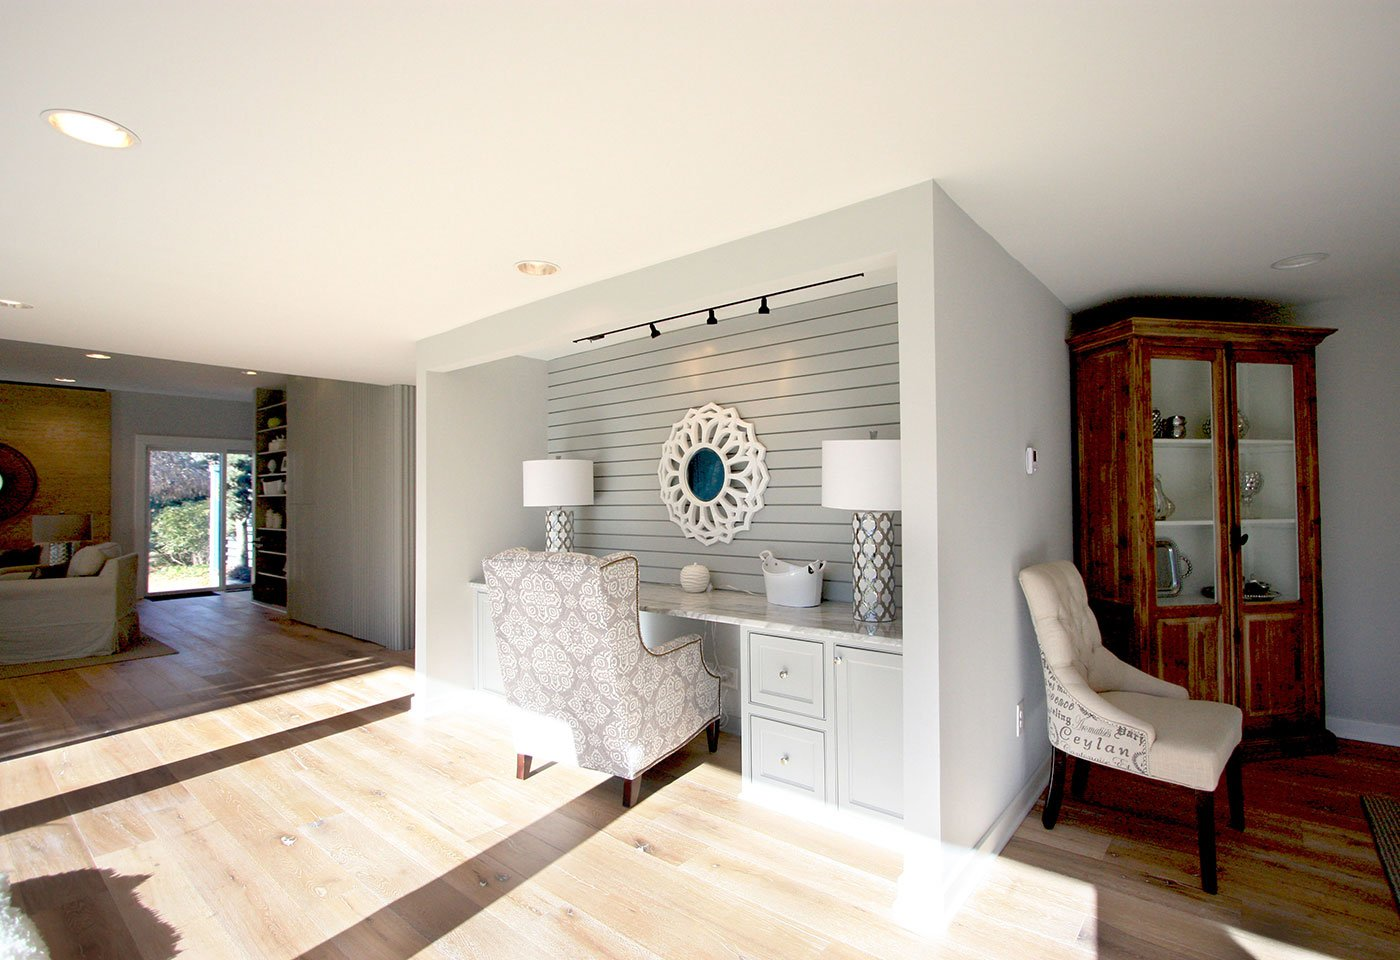 Home construction design service Rhode Island - local building firm - residential - commercial